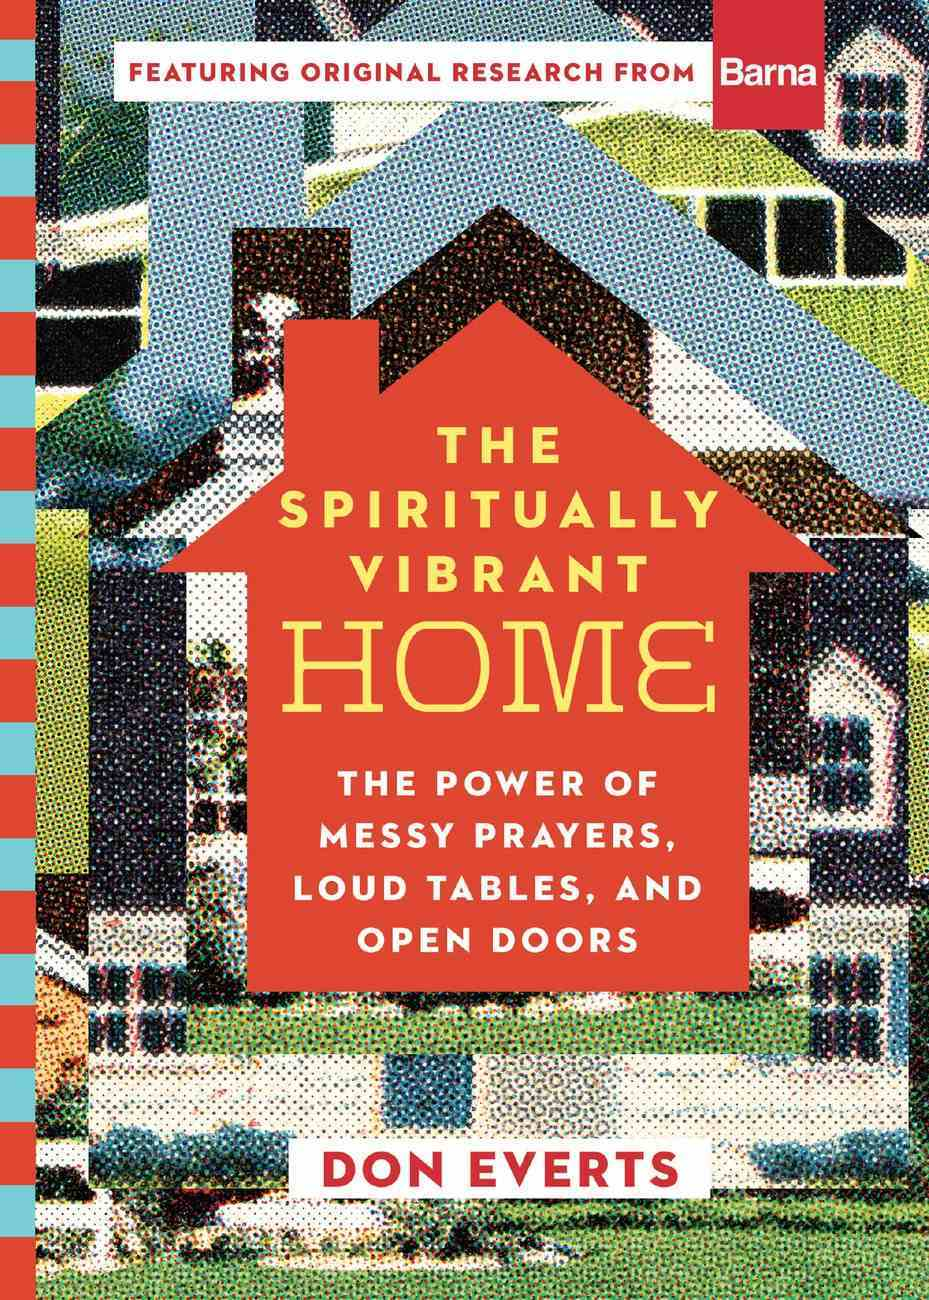 The Spiritually Vibrant Home: The Power of Messy Prayers, Loud Tables, and Open Doors Hardback